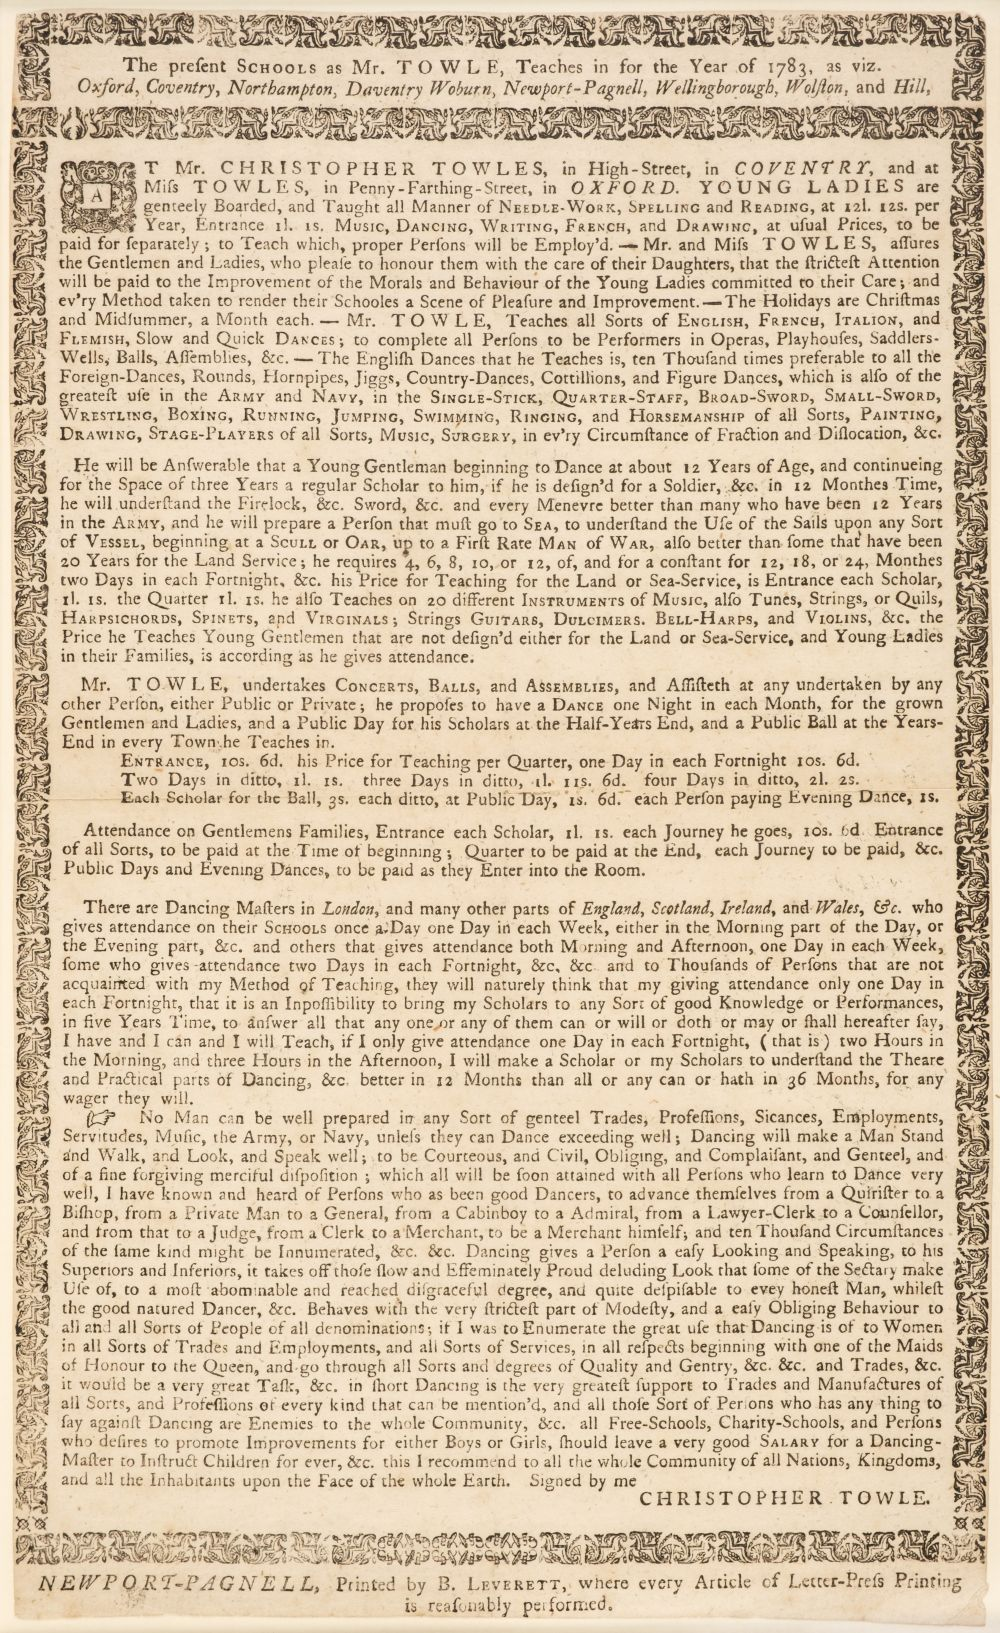 Broadside - Towle (Christopher). The present schools as Mr. Towle, teaches in for the year of 1783